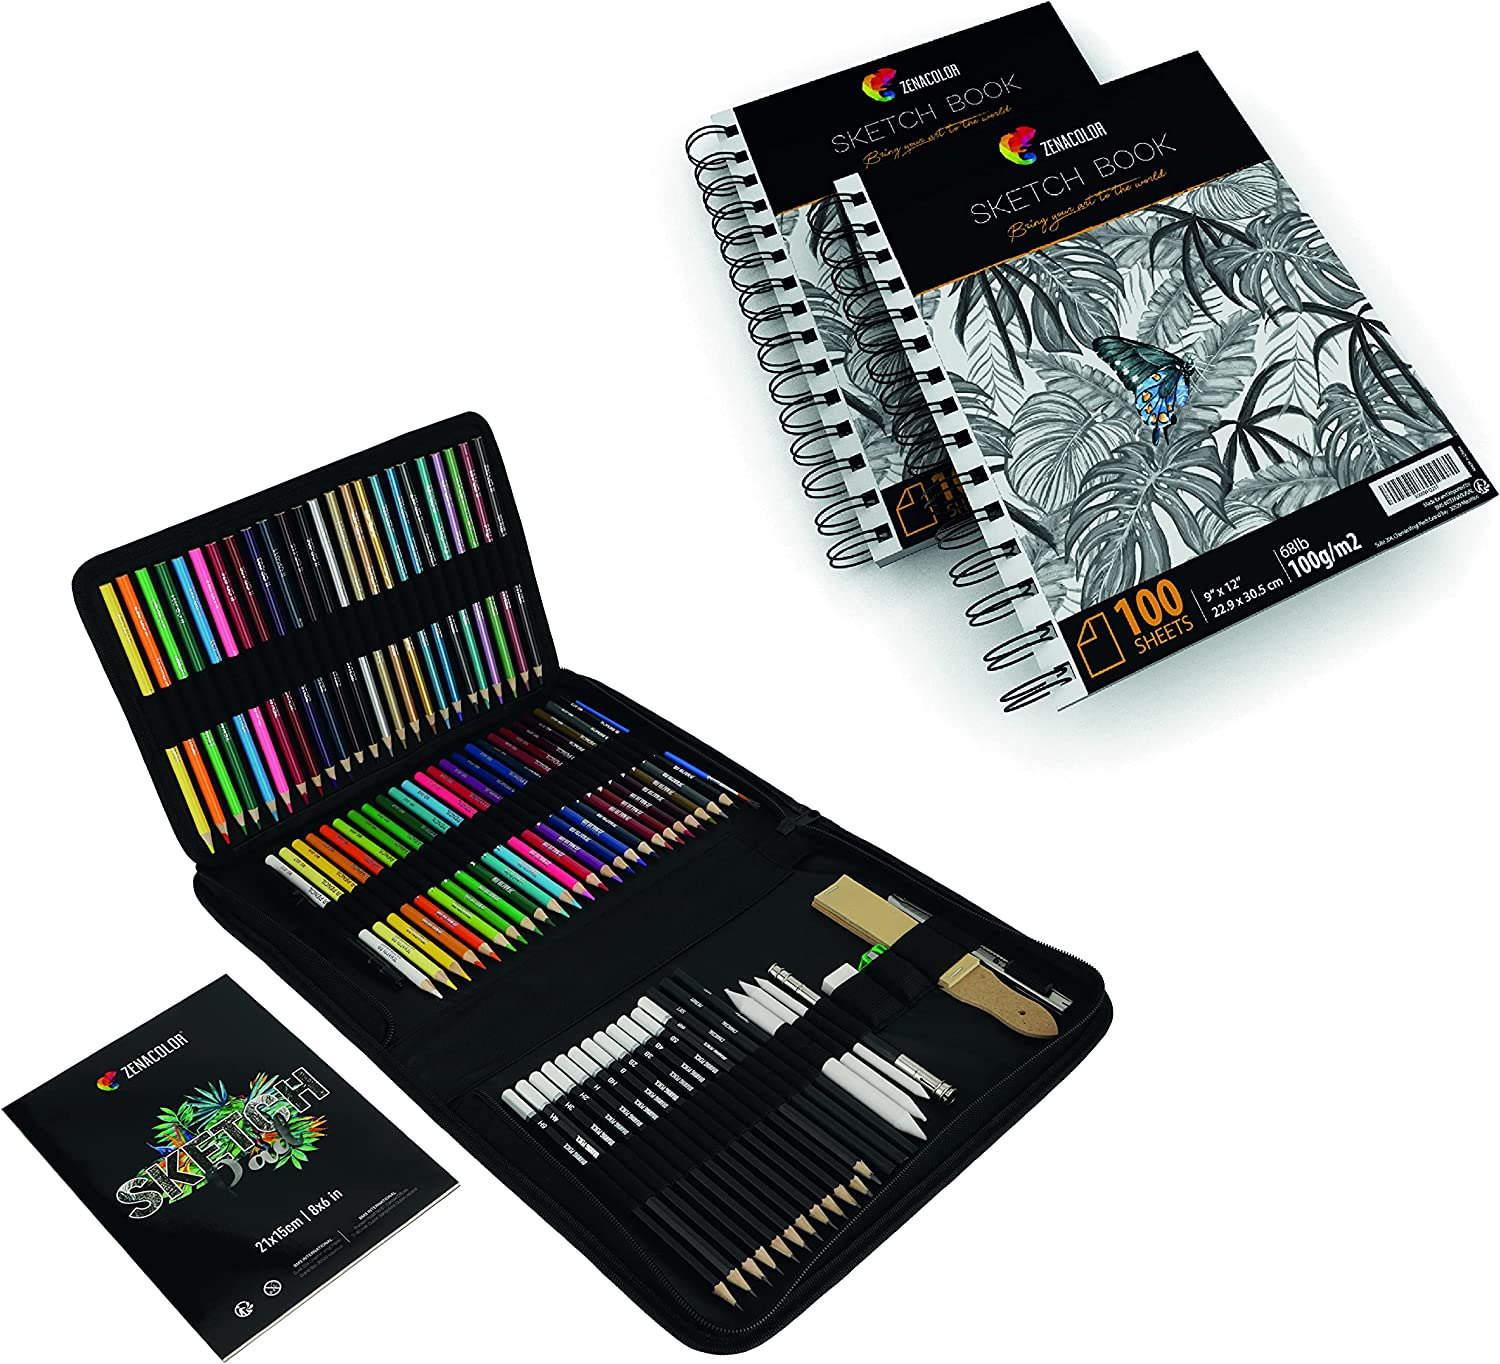 Set of Outlet ☆ Free Shipping Houston Mall 74-Piece Drawing 2x Sketch Book 200 Professional S